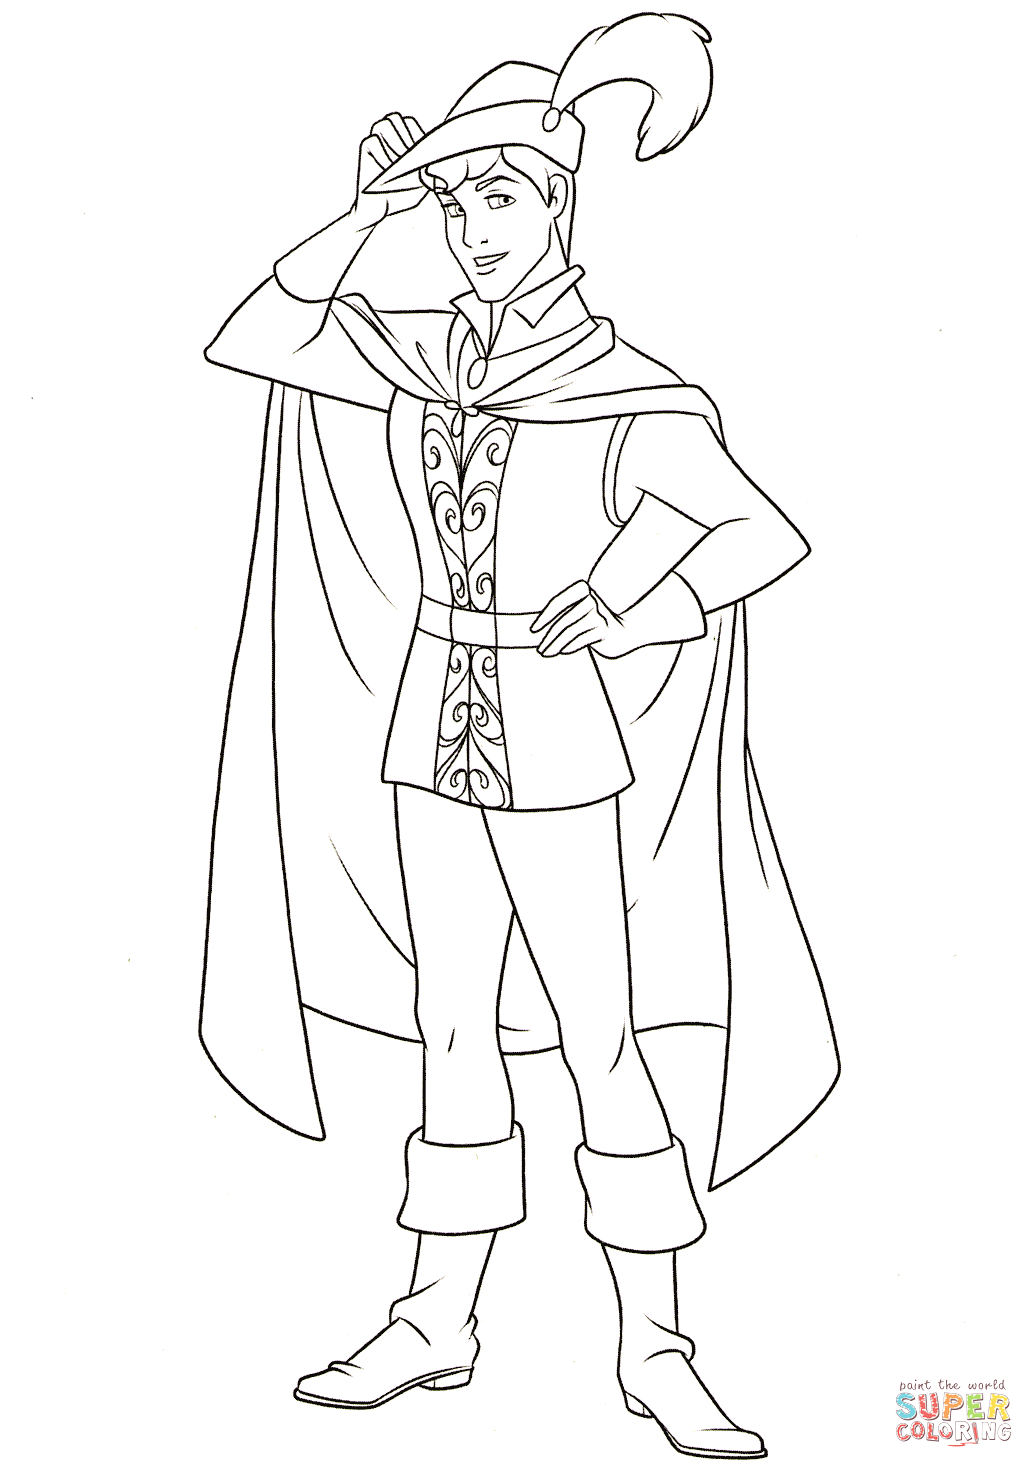 Sleeping Beauty and Prince Philip Coloring Pages Prince Phillip Coloring Page